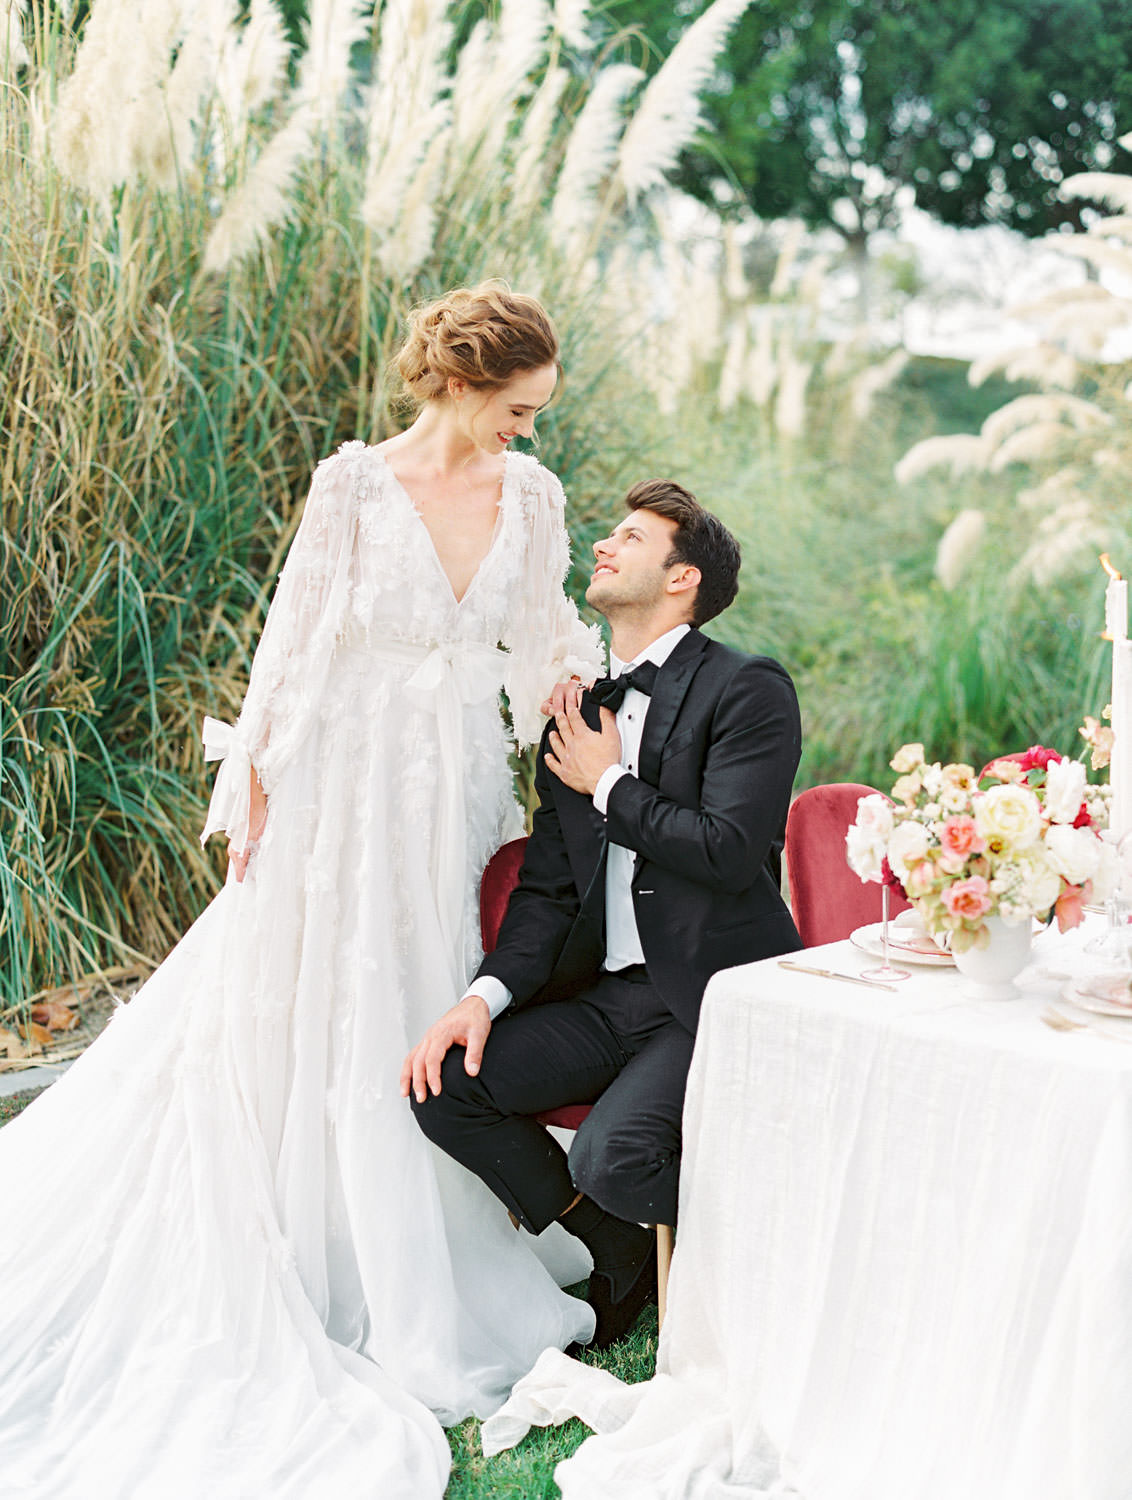 Bride in Marchesa Poppy gown and groom in The Black Tux sitting at reception table in a pampas grove, White linen with burgundy velvet chairs and centerpieces with ivory blush red and neutral tones, Pampas Grass Wedding in San Diego on Film by Cavin Elizabeth Photography